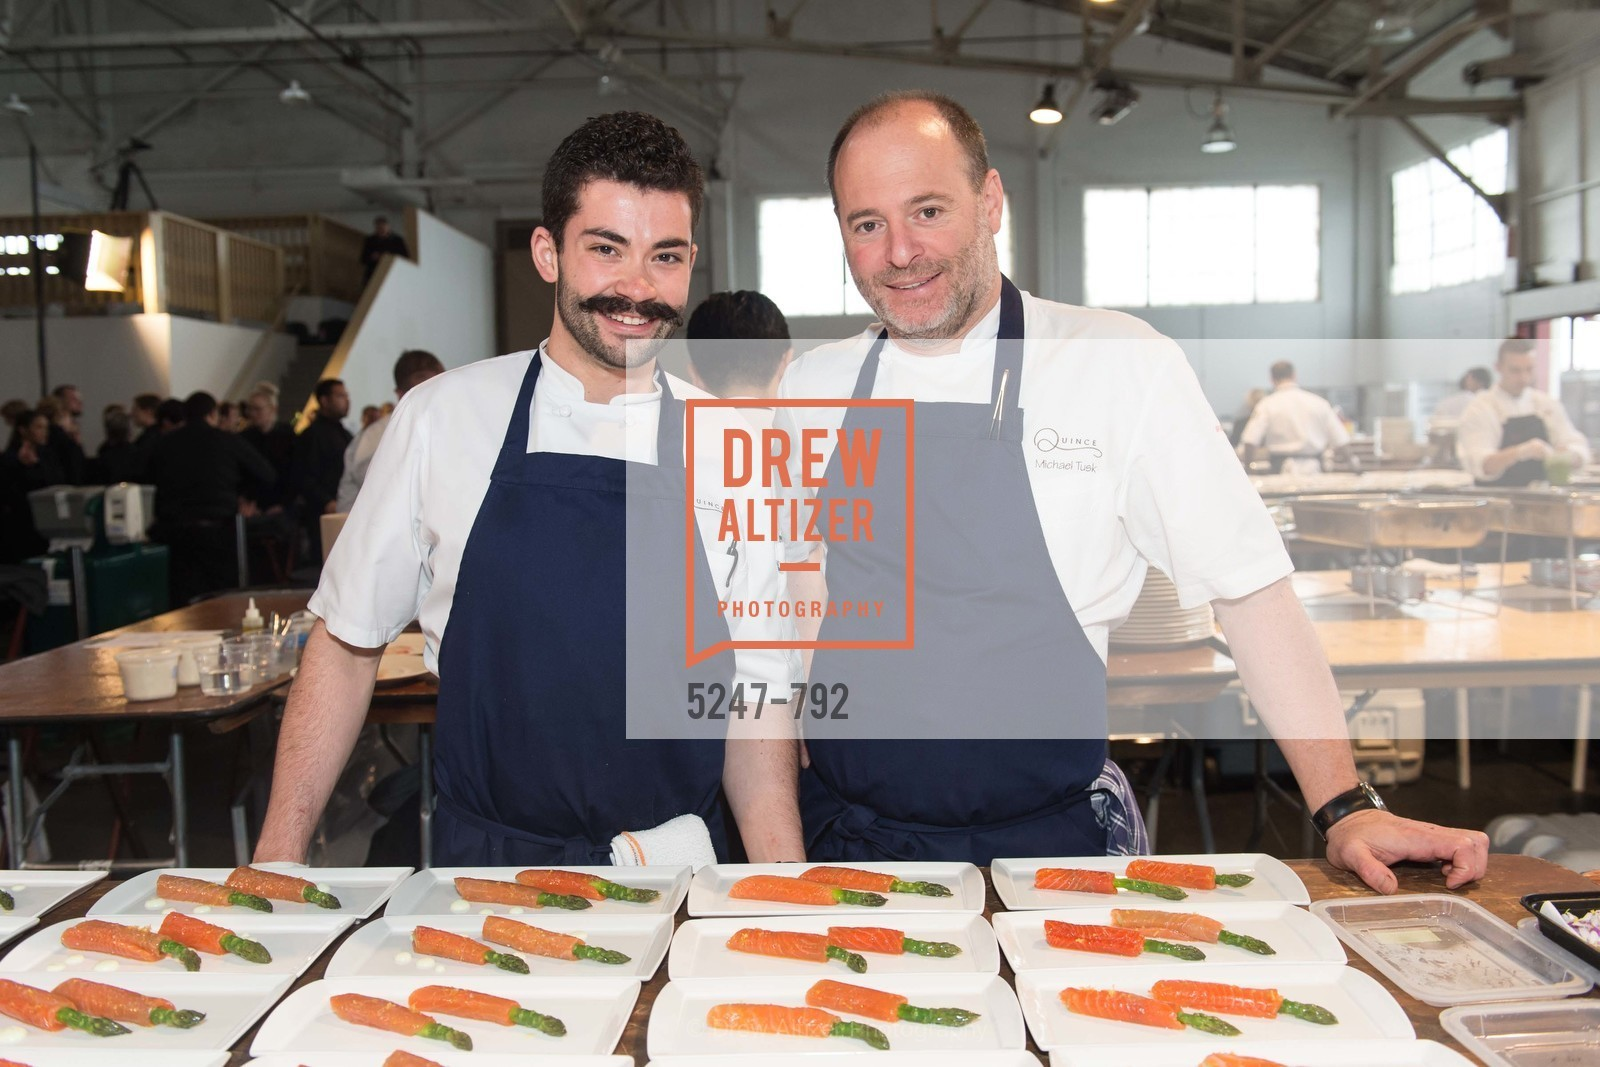 Joe Sasto, Michael Tusk, MEALS ON WHEELS OF SAN FRANCISCO'S 28th Annual Star Chefs and Vintners Gala, US, April 19th, 2015,Drew Altizer, Drew Altizer Photography, full-service agency, private events, San Francisco photographer, photographer california